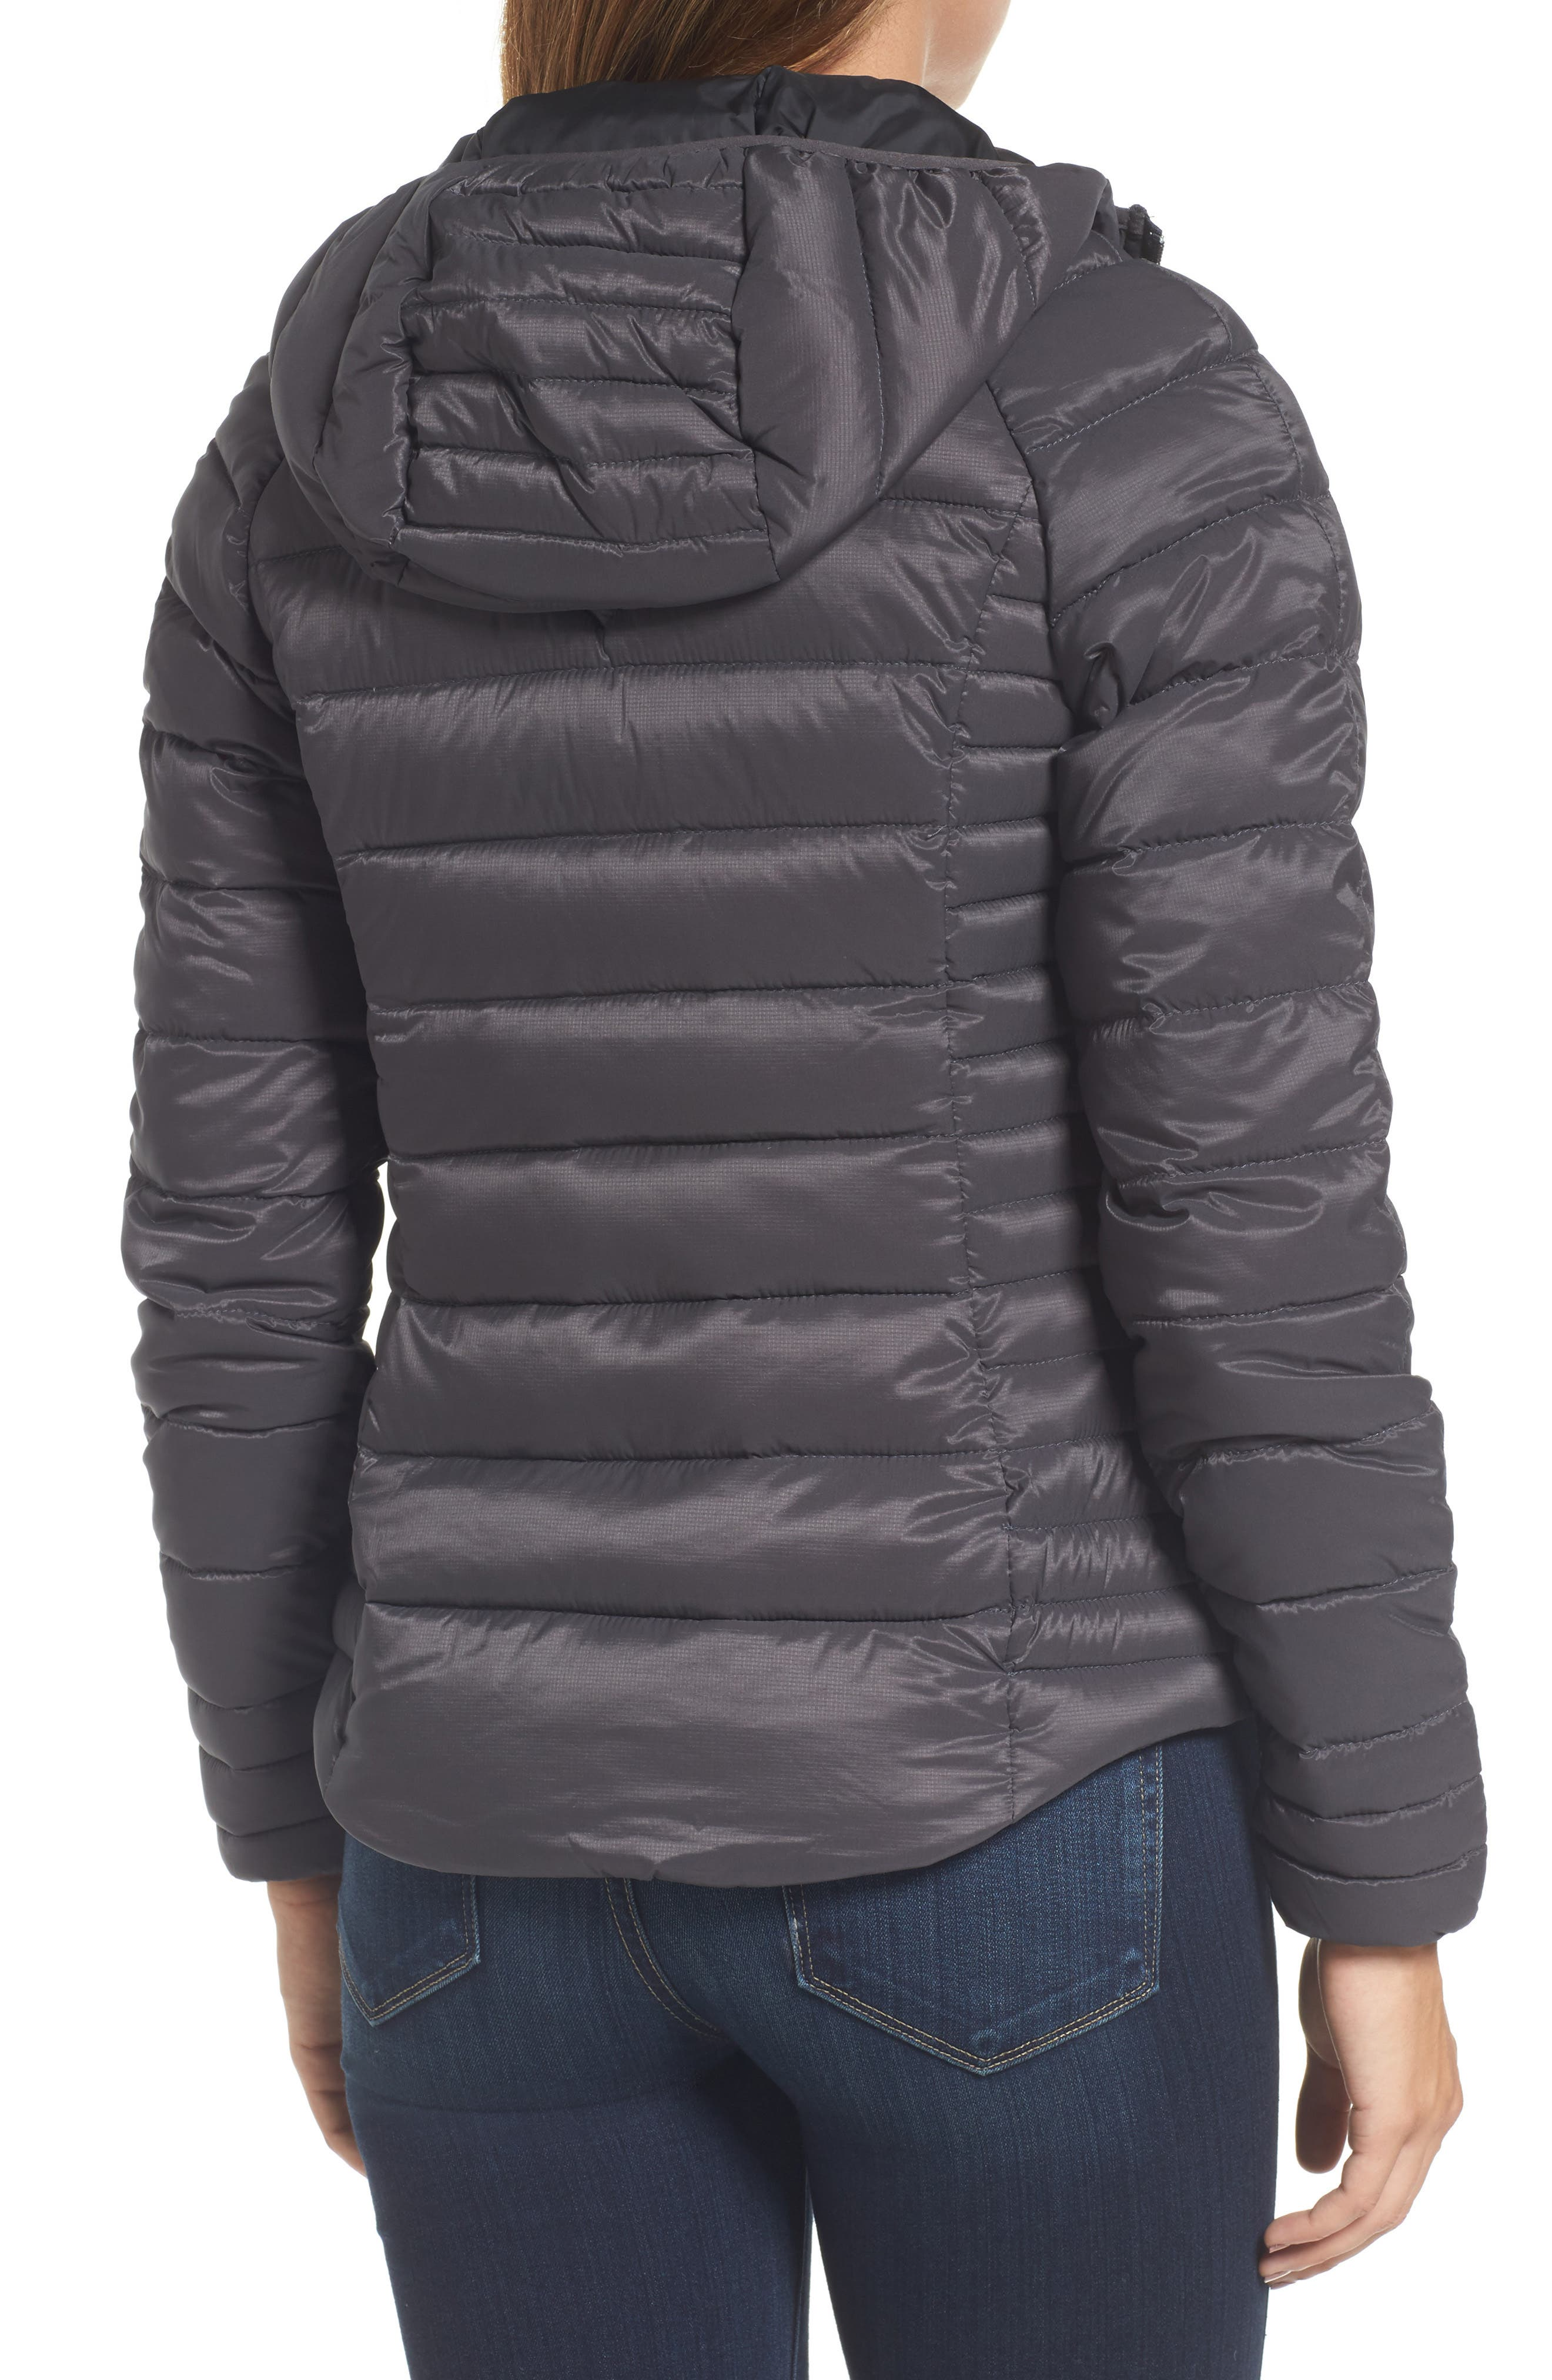 'Brookvale' Packable Hooded Quilted Down Jacket,                             Alternate thumbnail 2, color,                             Graphite/ Black